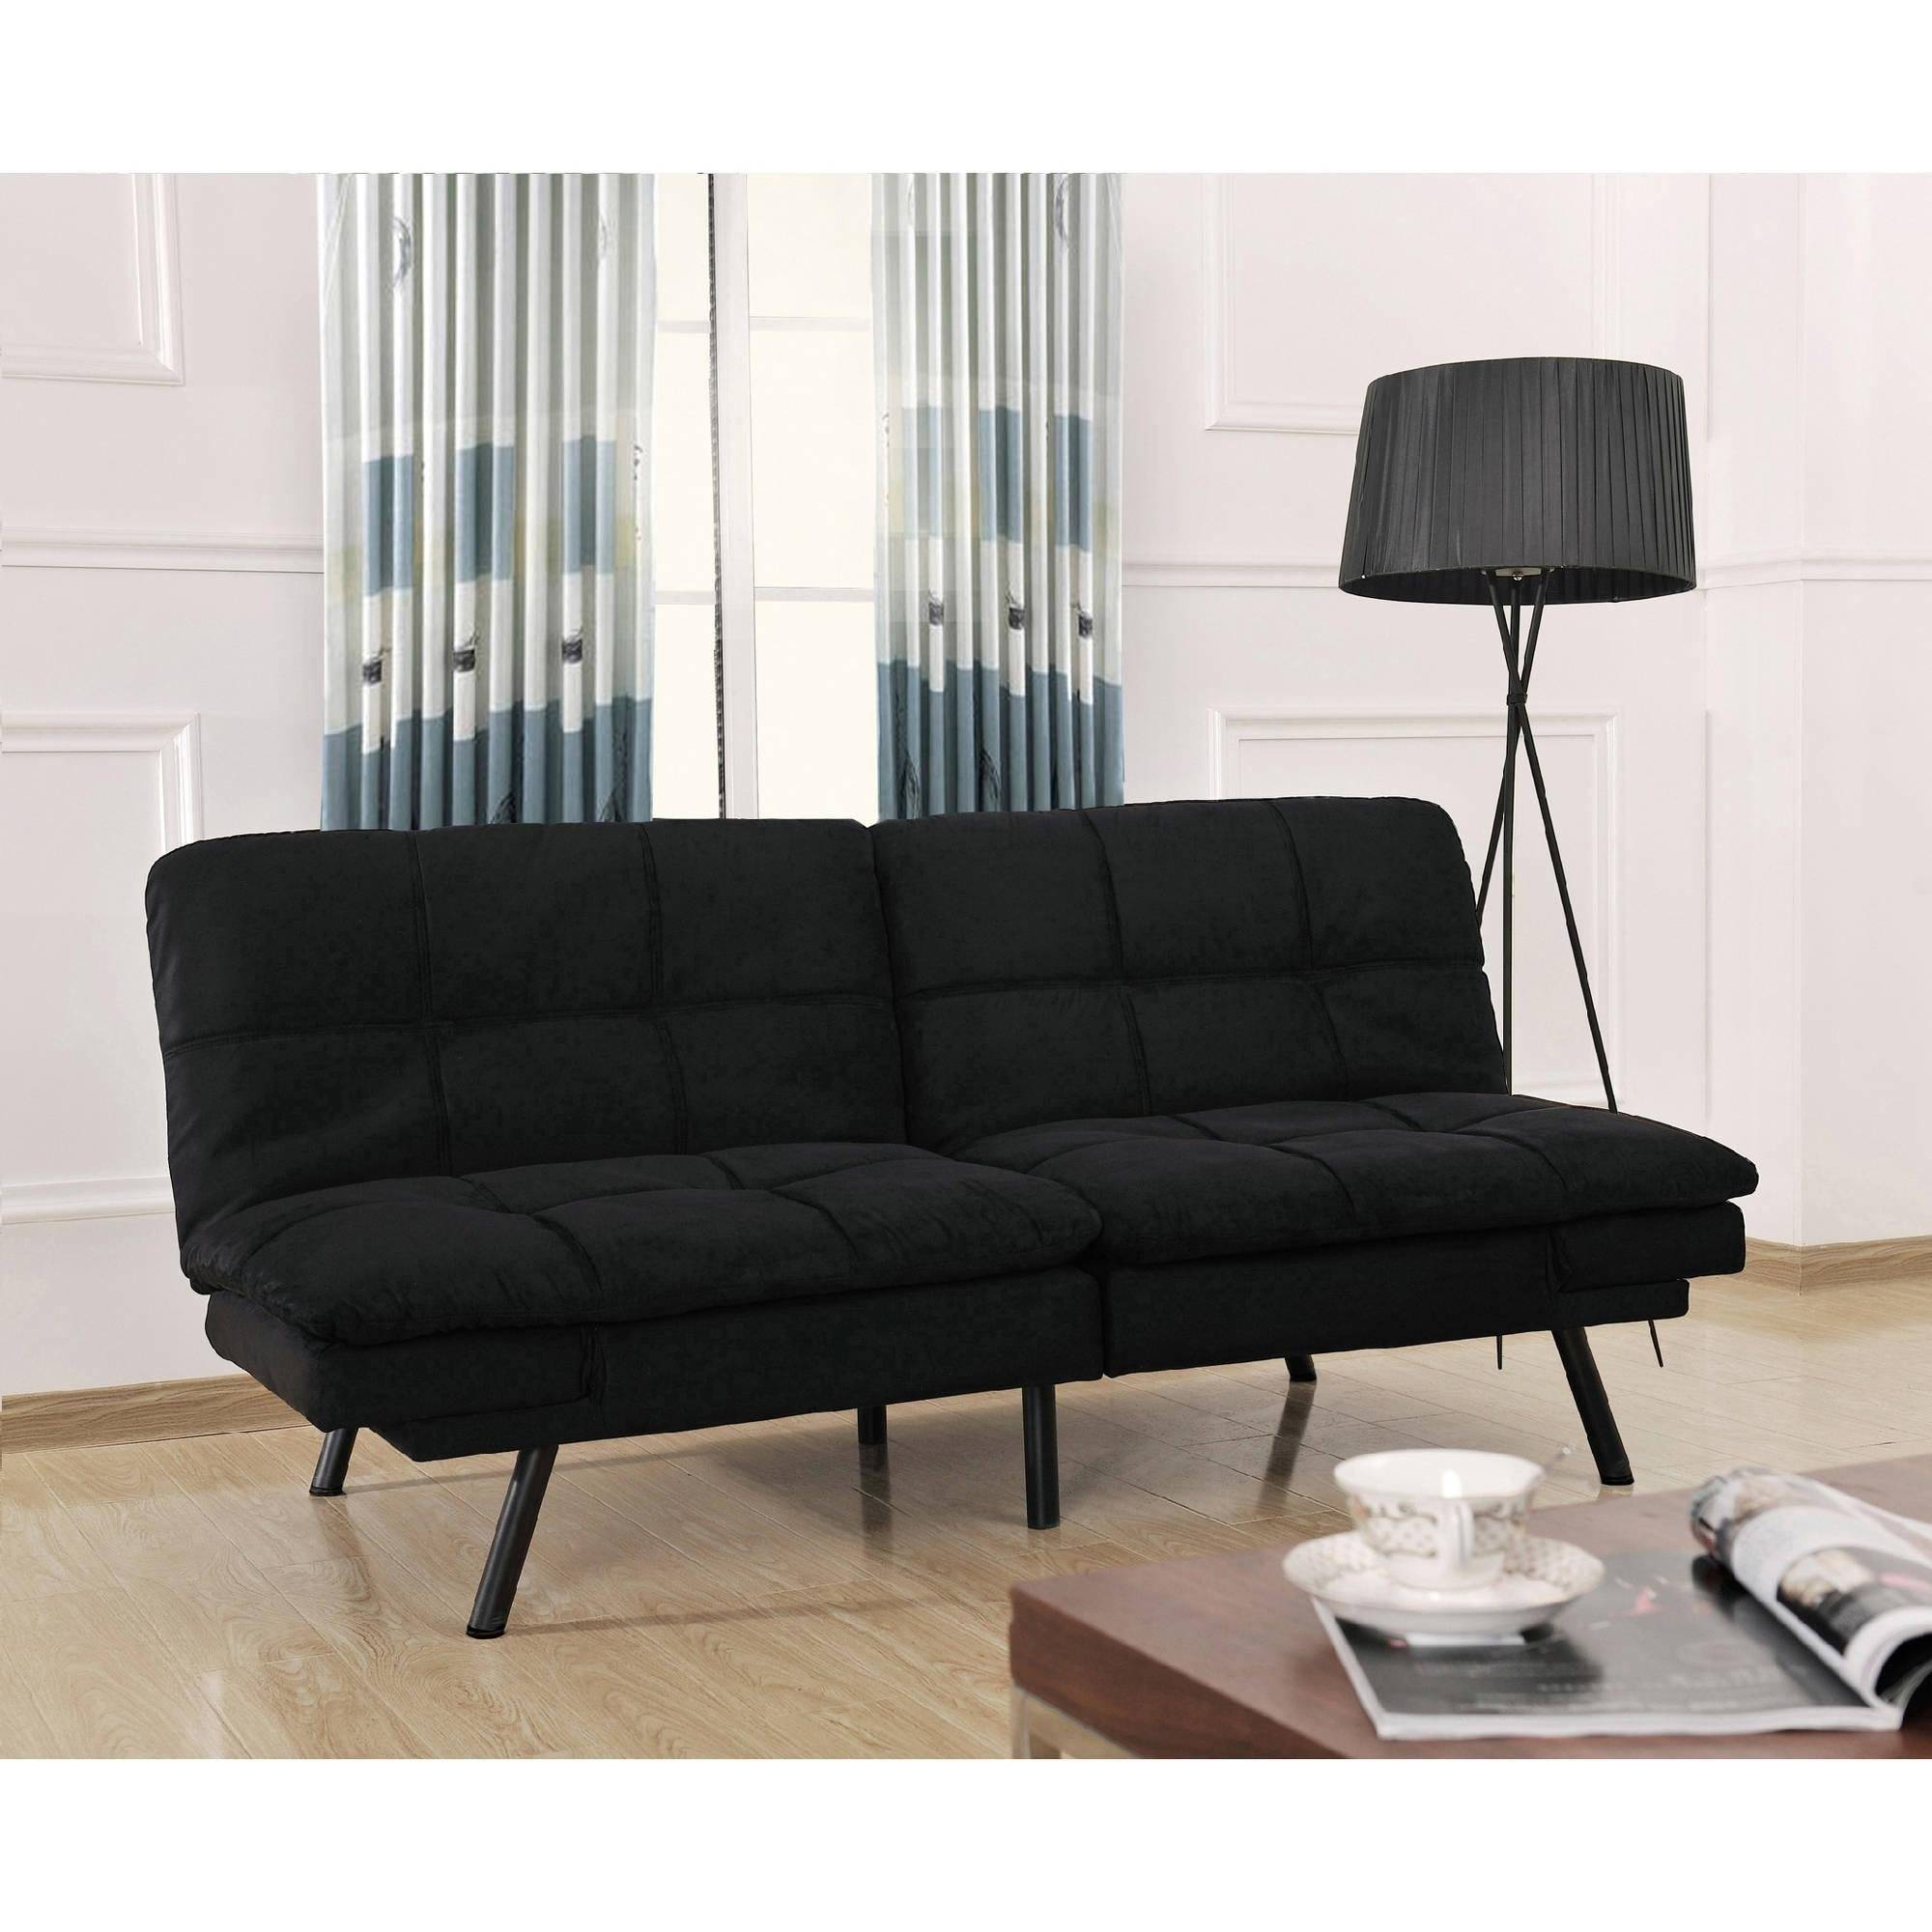 Mainstays Contempo Futon Sofa Bed 80 With Inside Beds